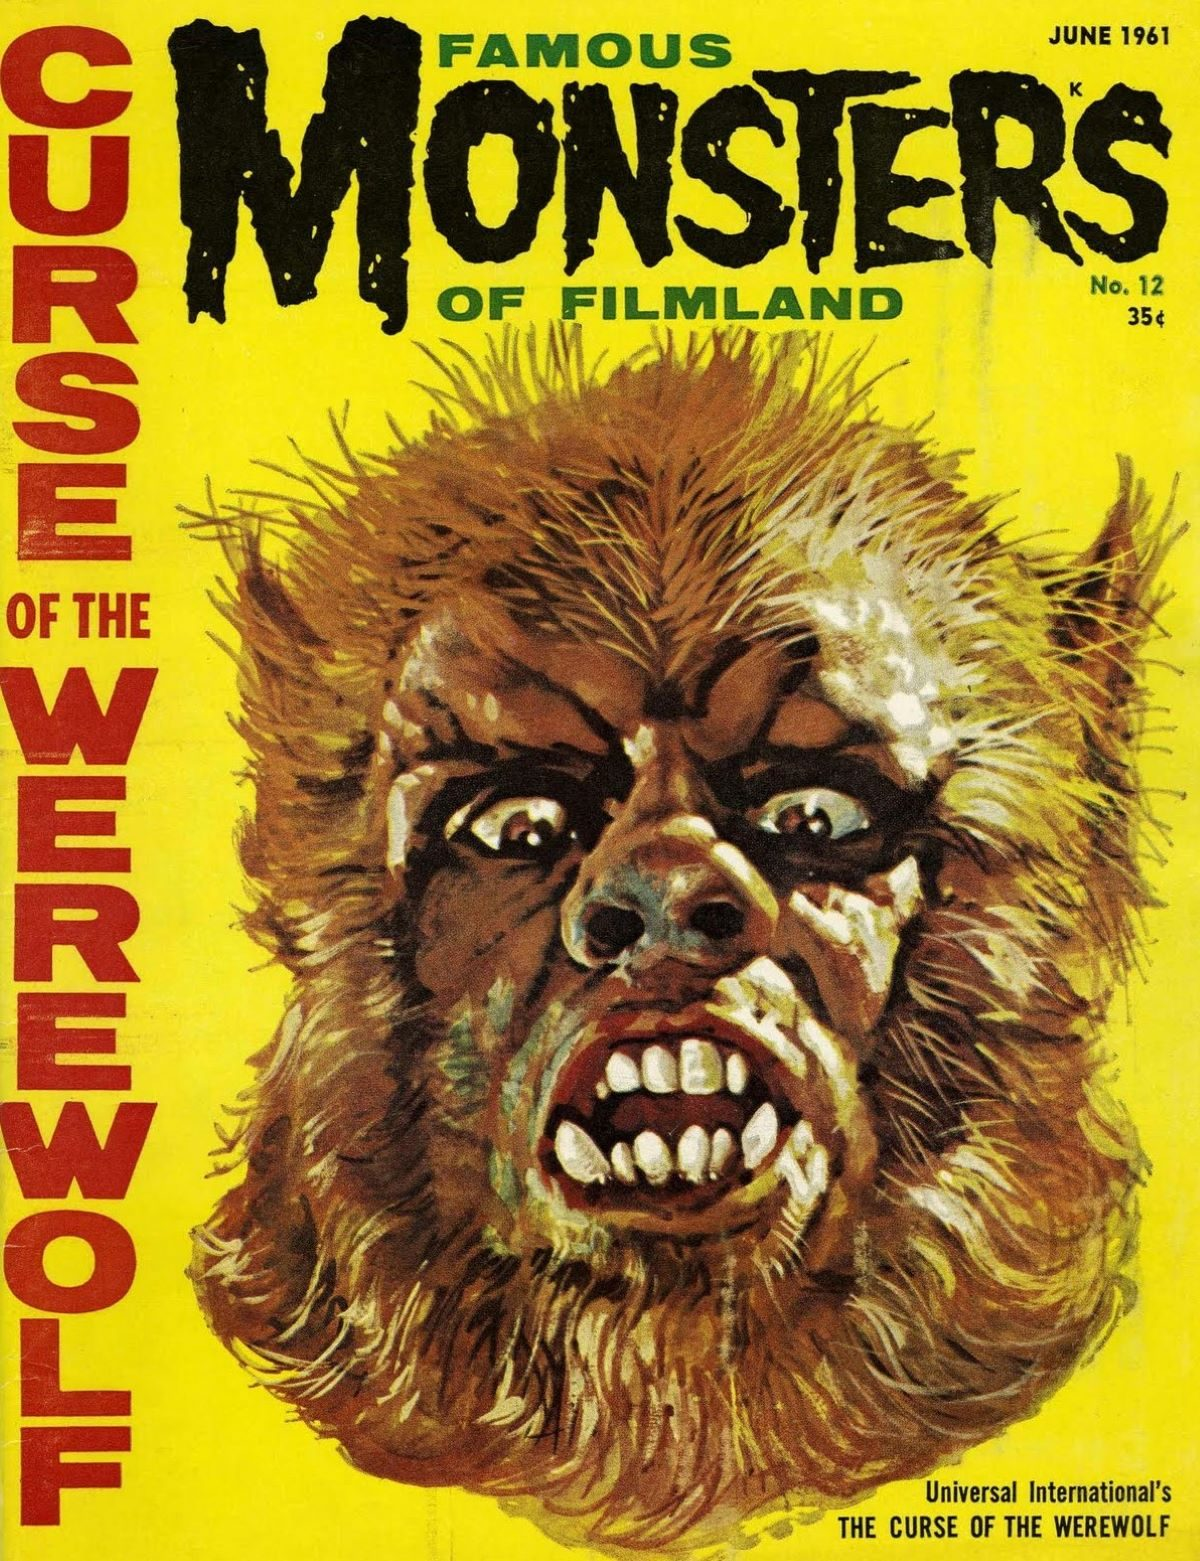 Famous Monsters of Filmland, magazine, horror films, Oliver Reed, Curse of the Werewolf, 1960s